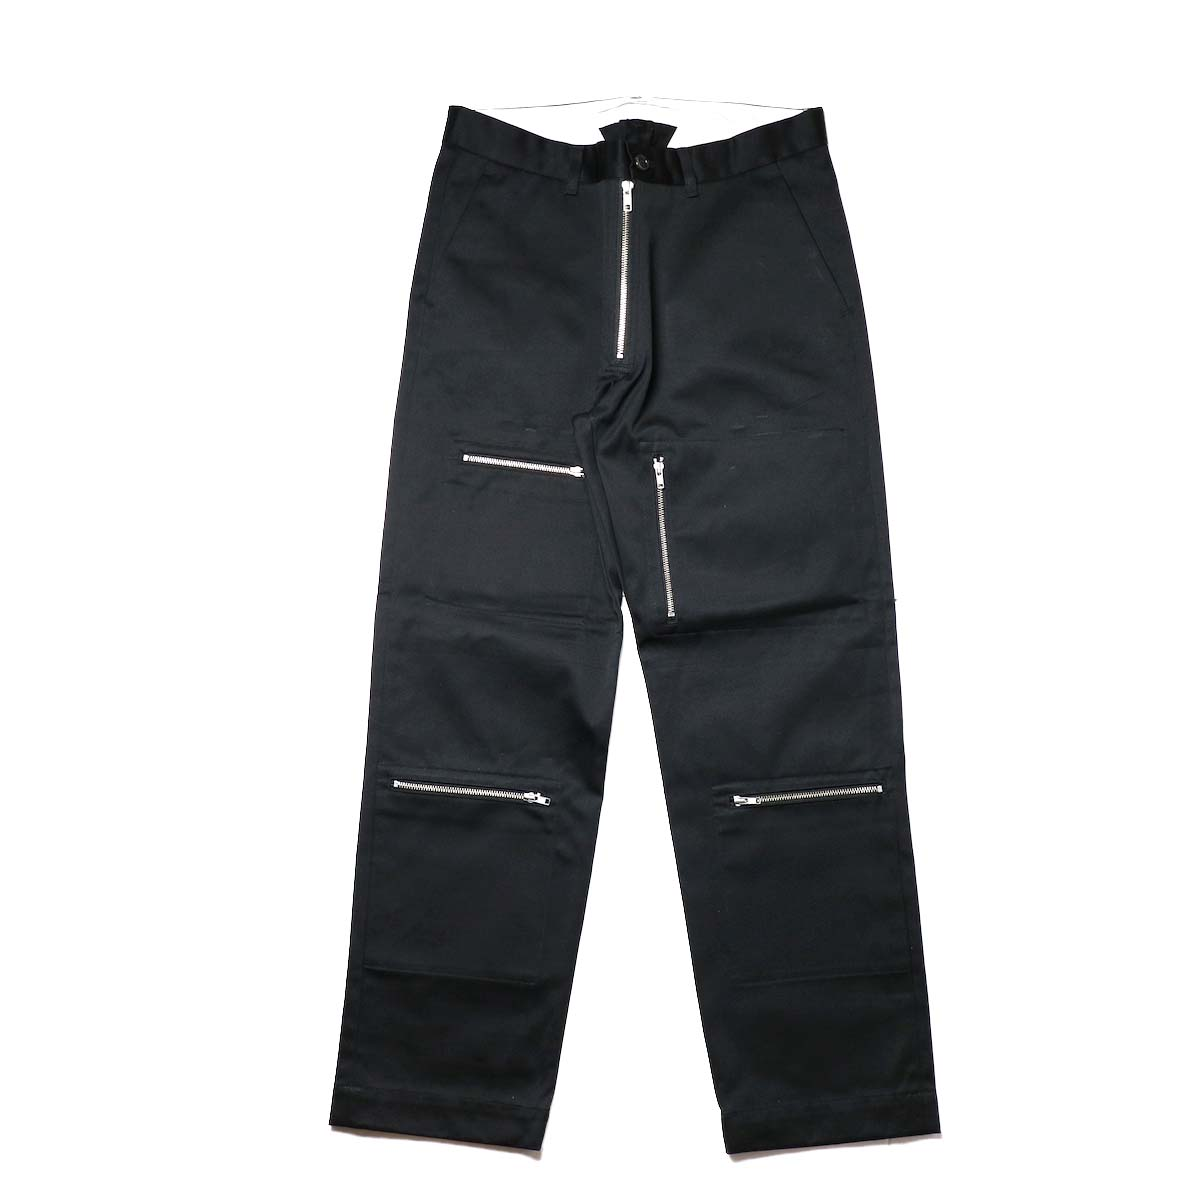 FUTURE PRIMITIVE / FP FZ FLIGHT CHINO PANTS (Black)